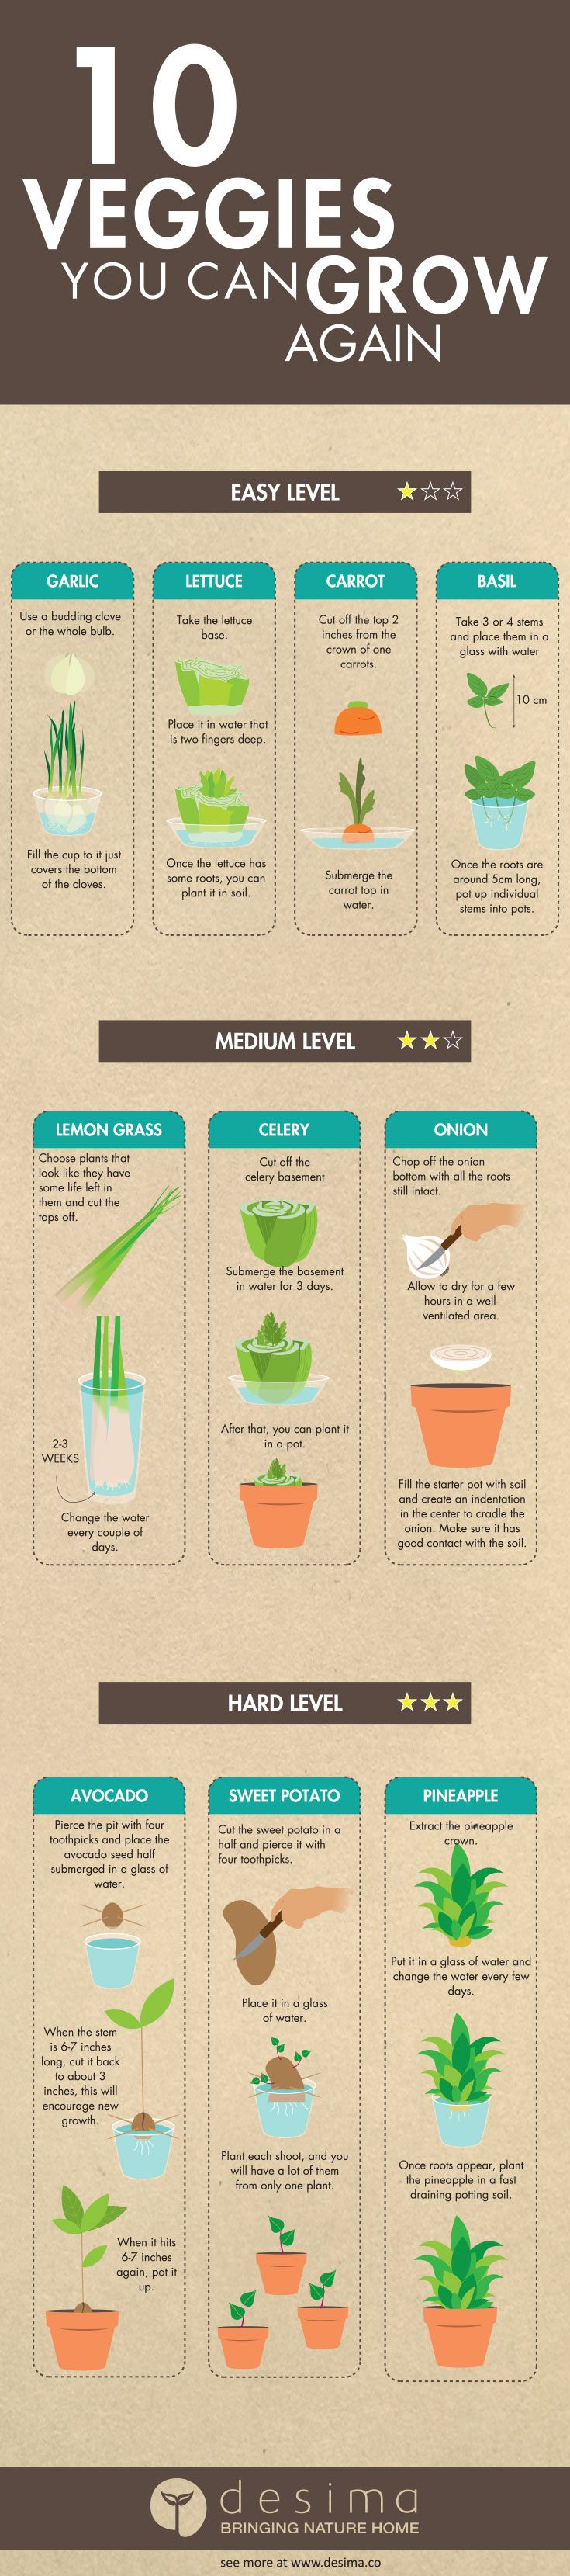 10 Veggies you can grow again